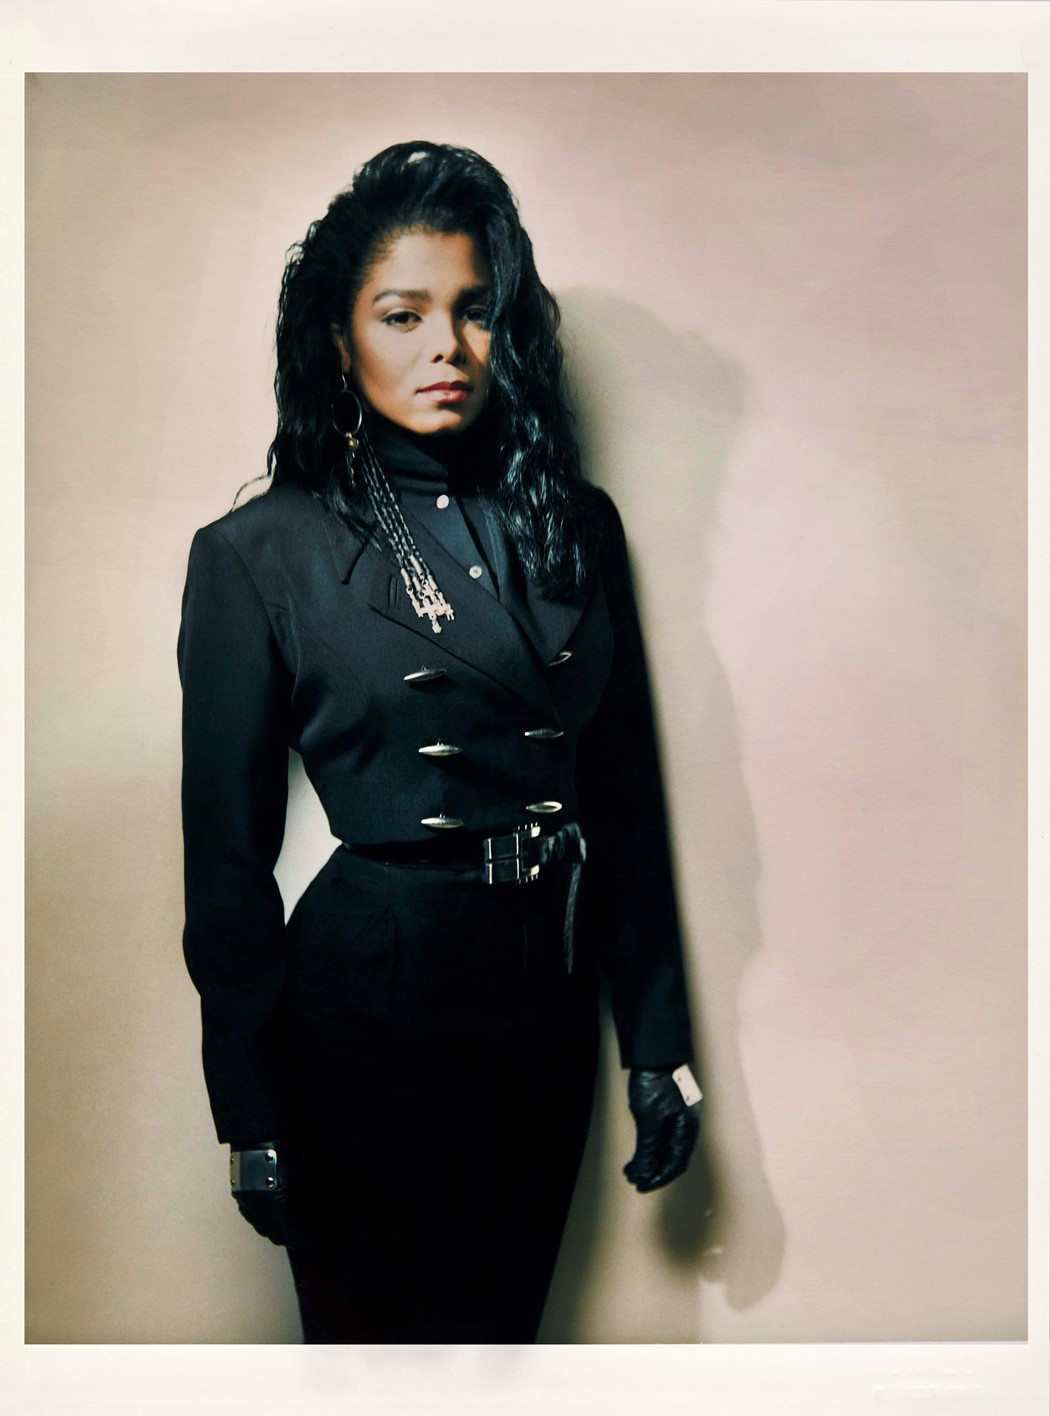 Relive How Massive Janet Jackson Was In Her Prime | Lipstick Alley